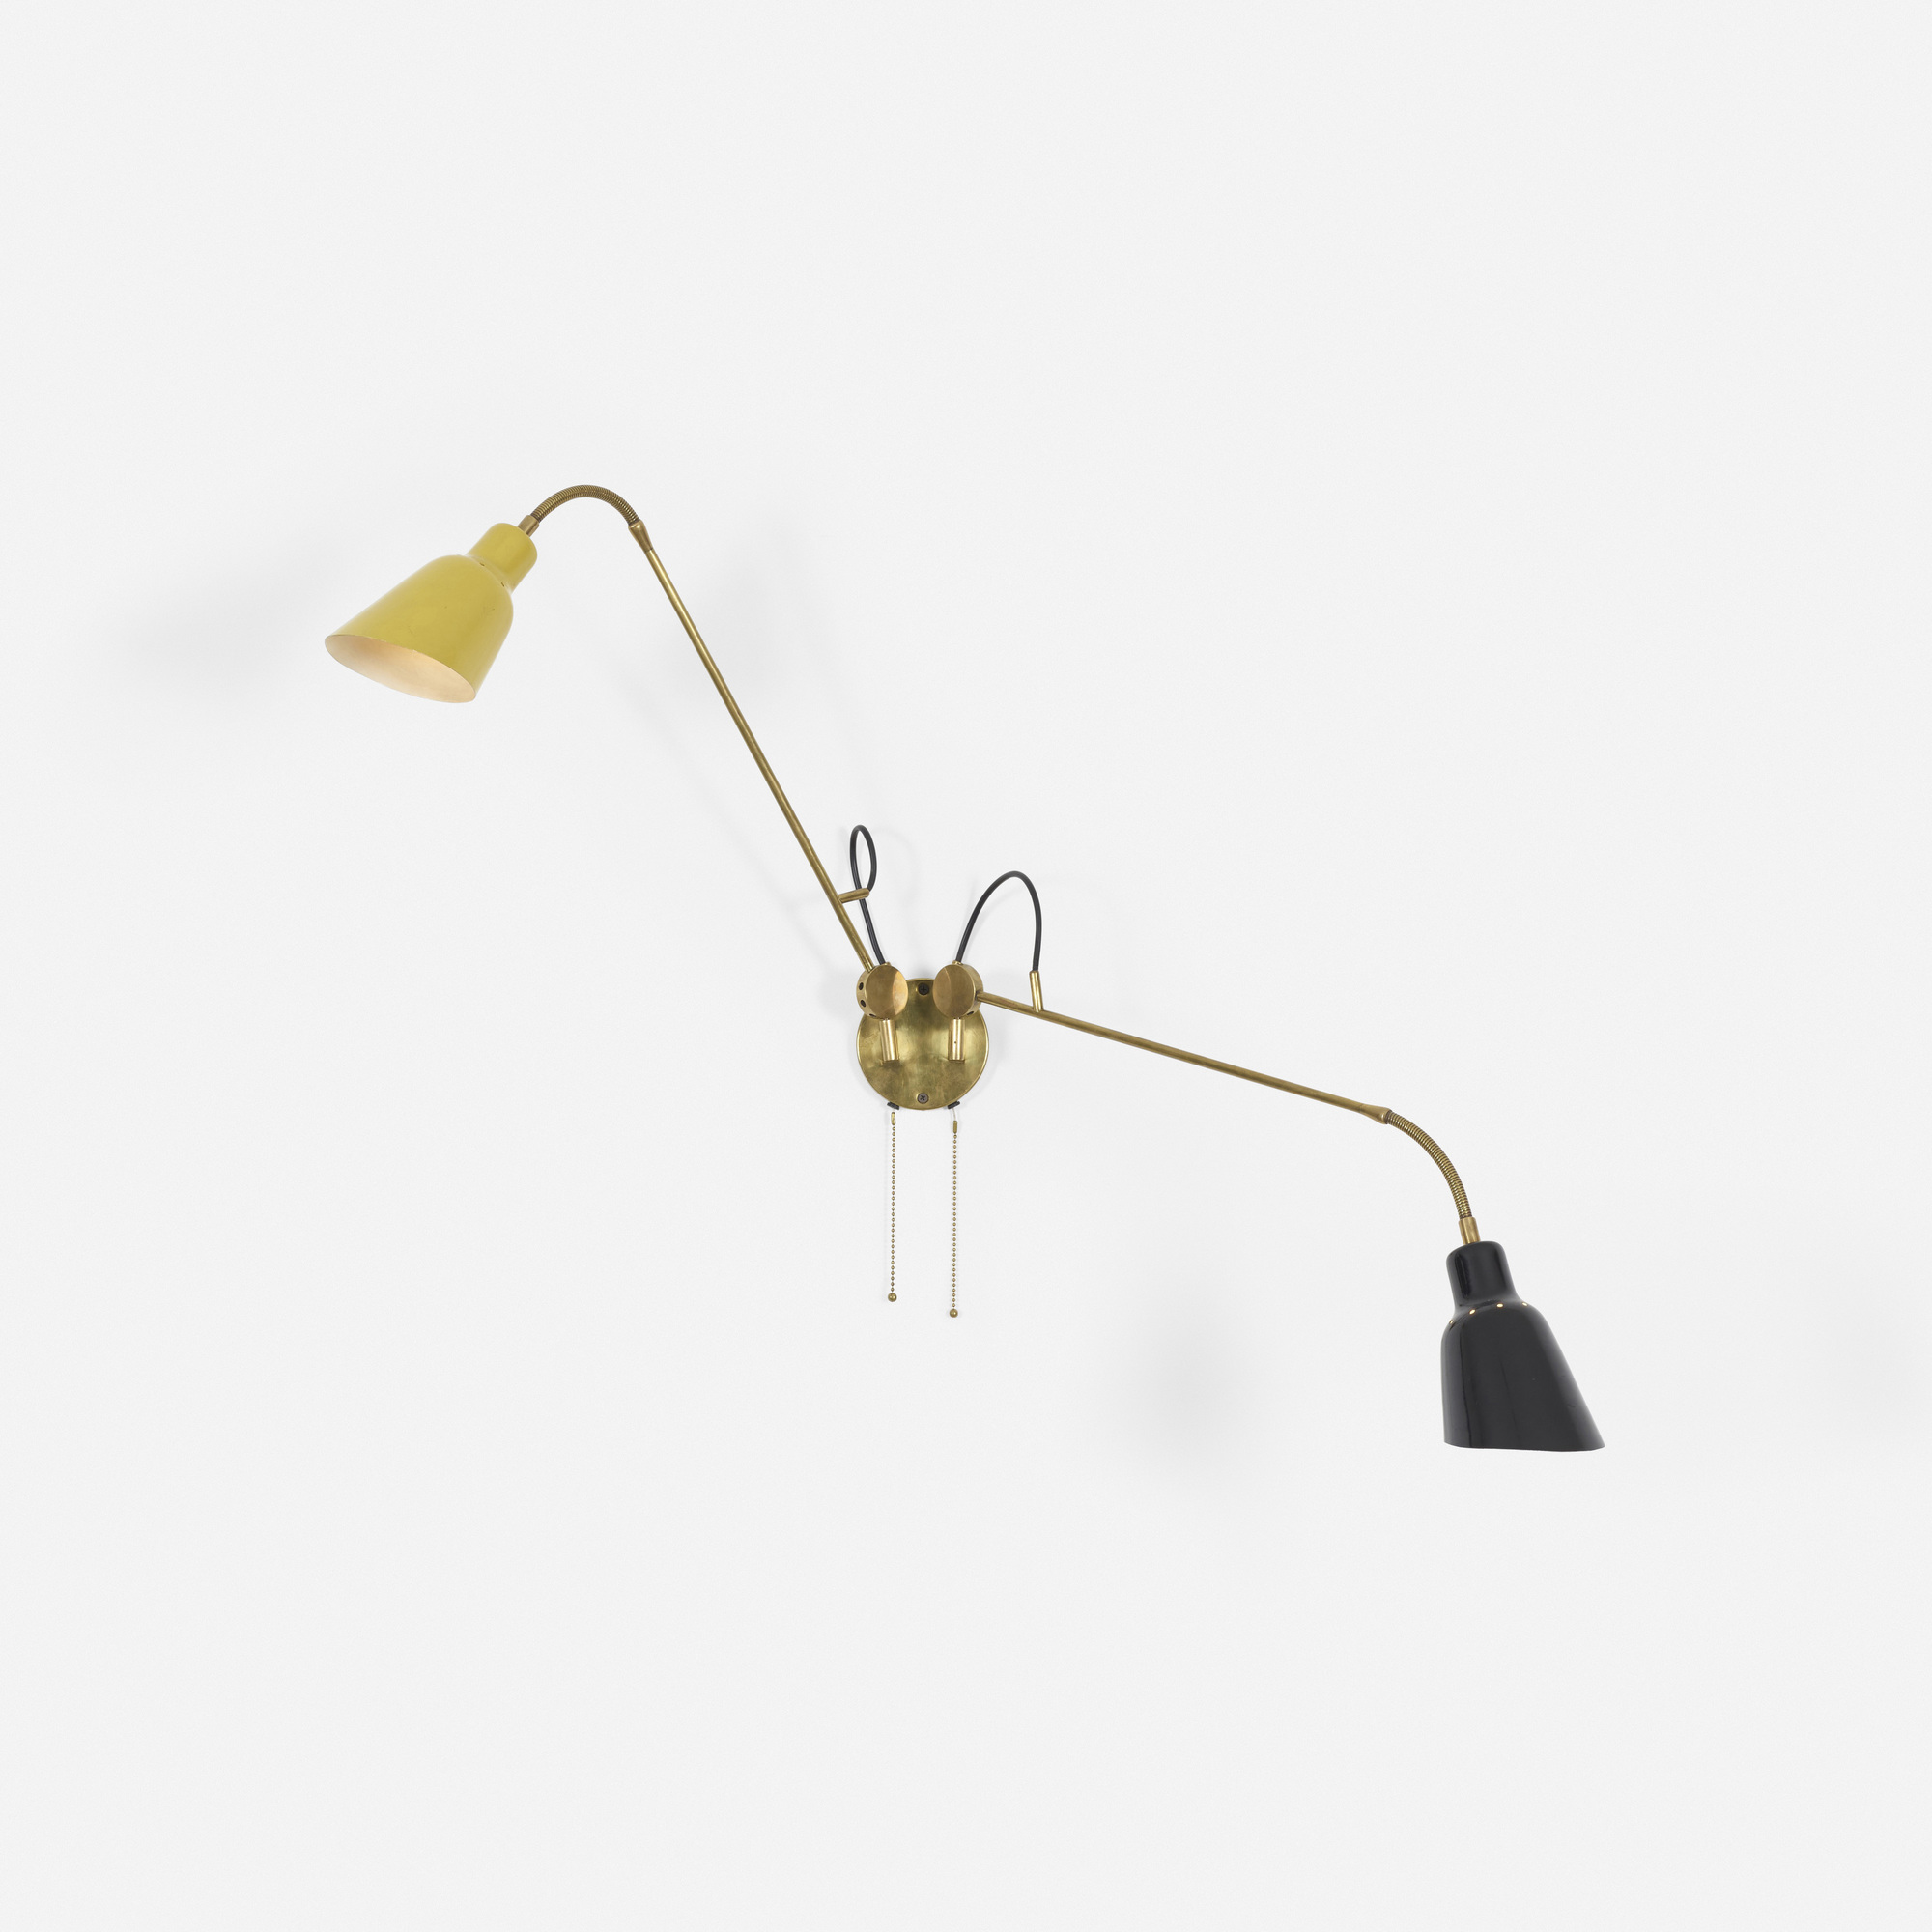 35: Angelo Lelii / Rare articulated wall lamp (2 of 3)